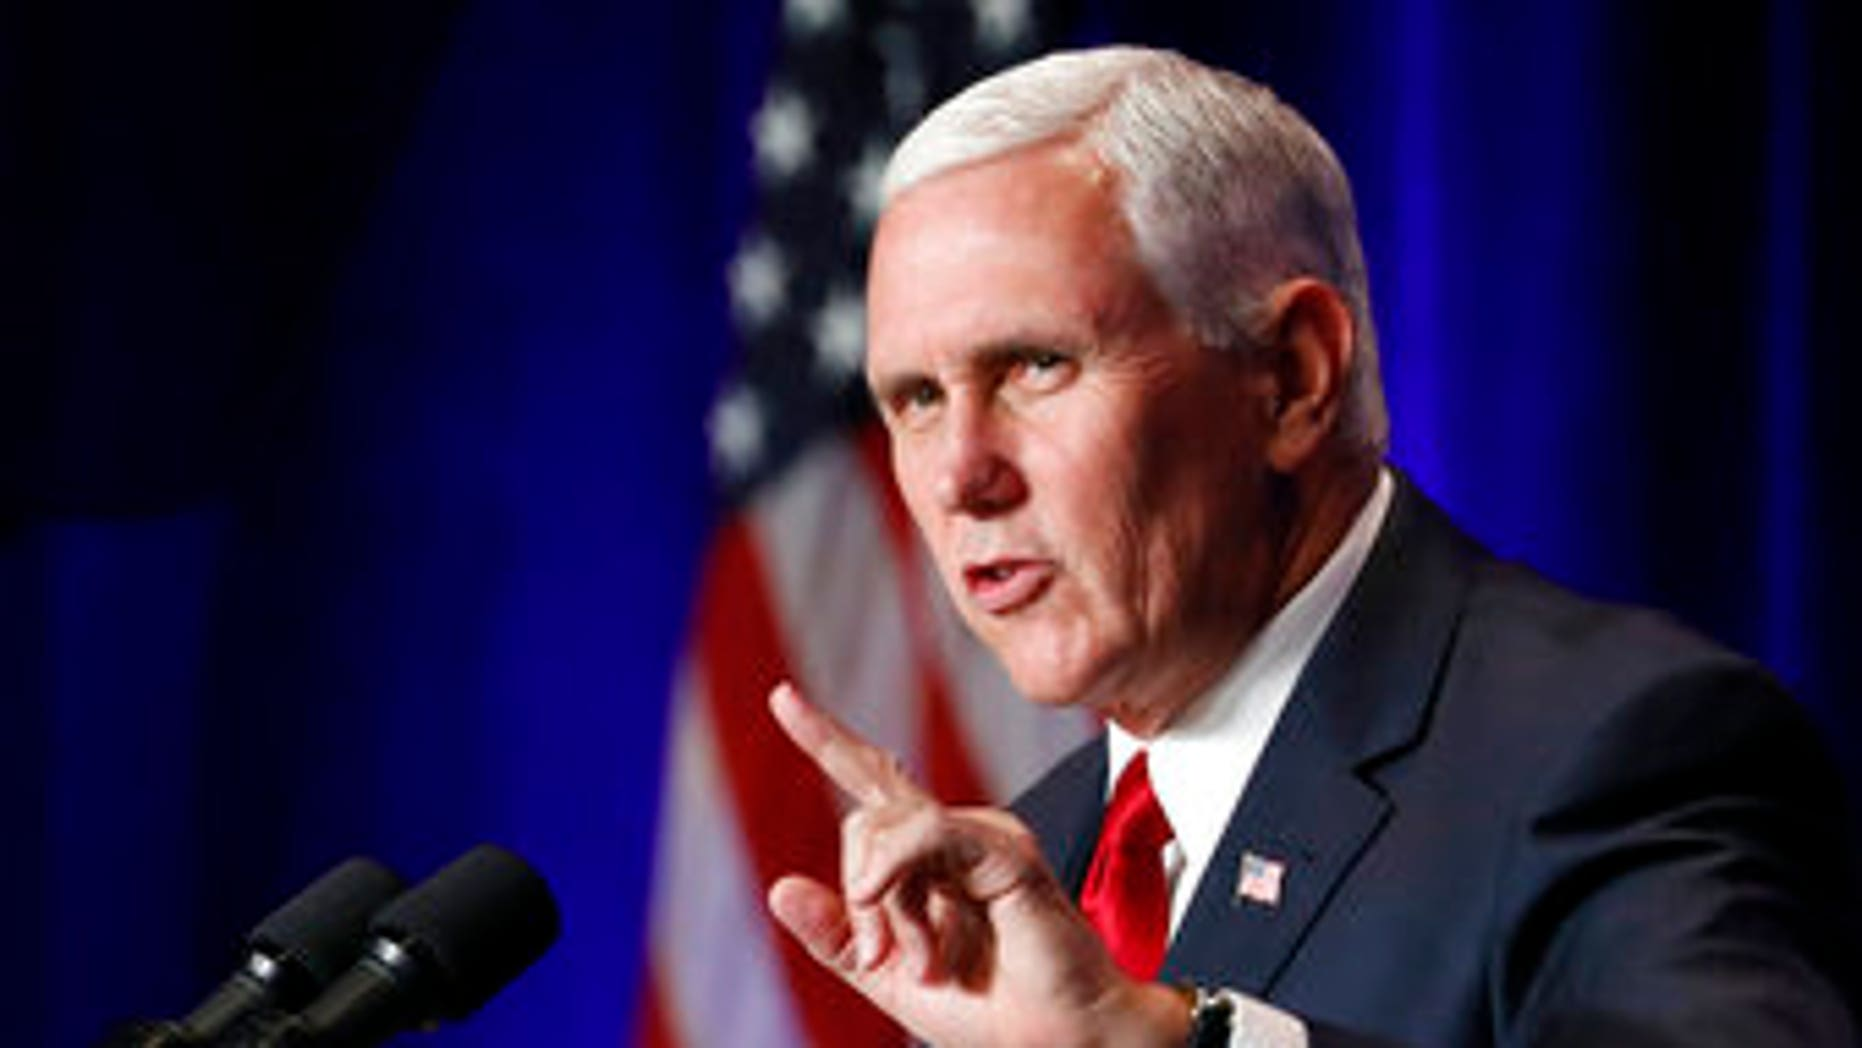 Vice President Mike Pence speaks at the Young America's Foundation's 39th annual National Conservative Student Conference, Friday, Aug. 4, 2017, in Washington. (AP Photo/Alex Brandon)